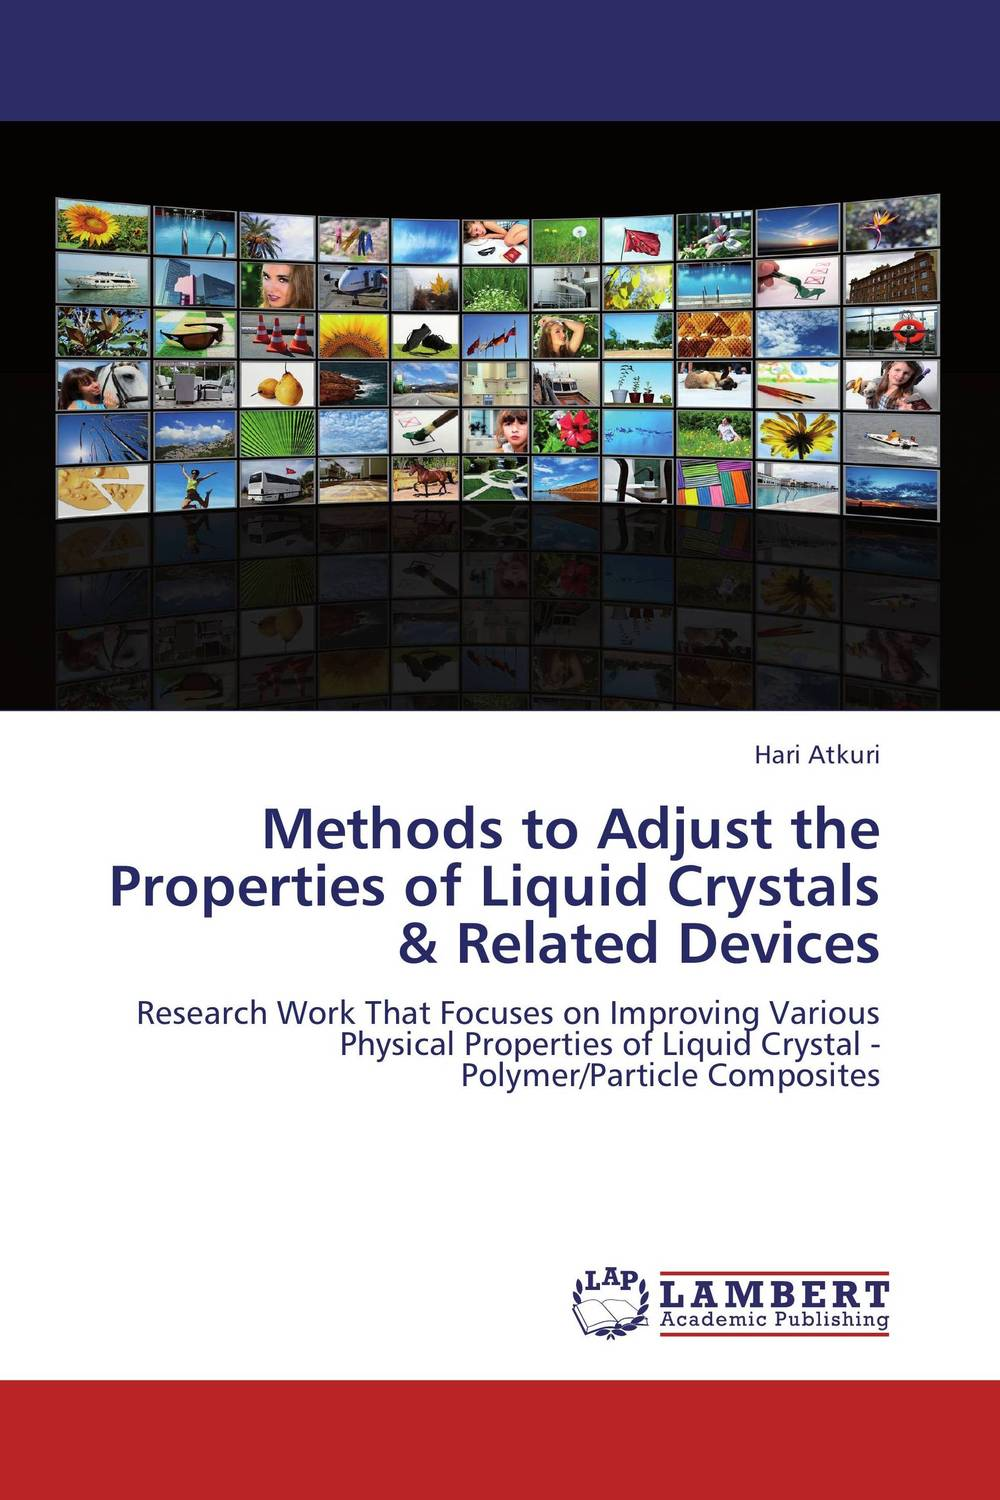 Methods to Adjust the Properties of Liquid Crystals & Related Devices belousov a security features of banknotes and other documents methods of authentication manual денежные билеты бланки ценных бумаг и документов